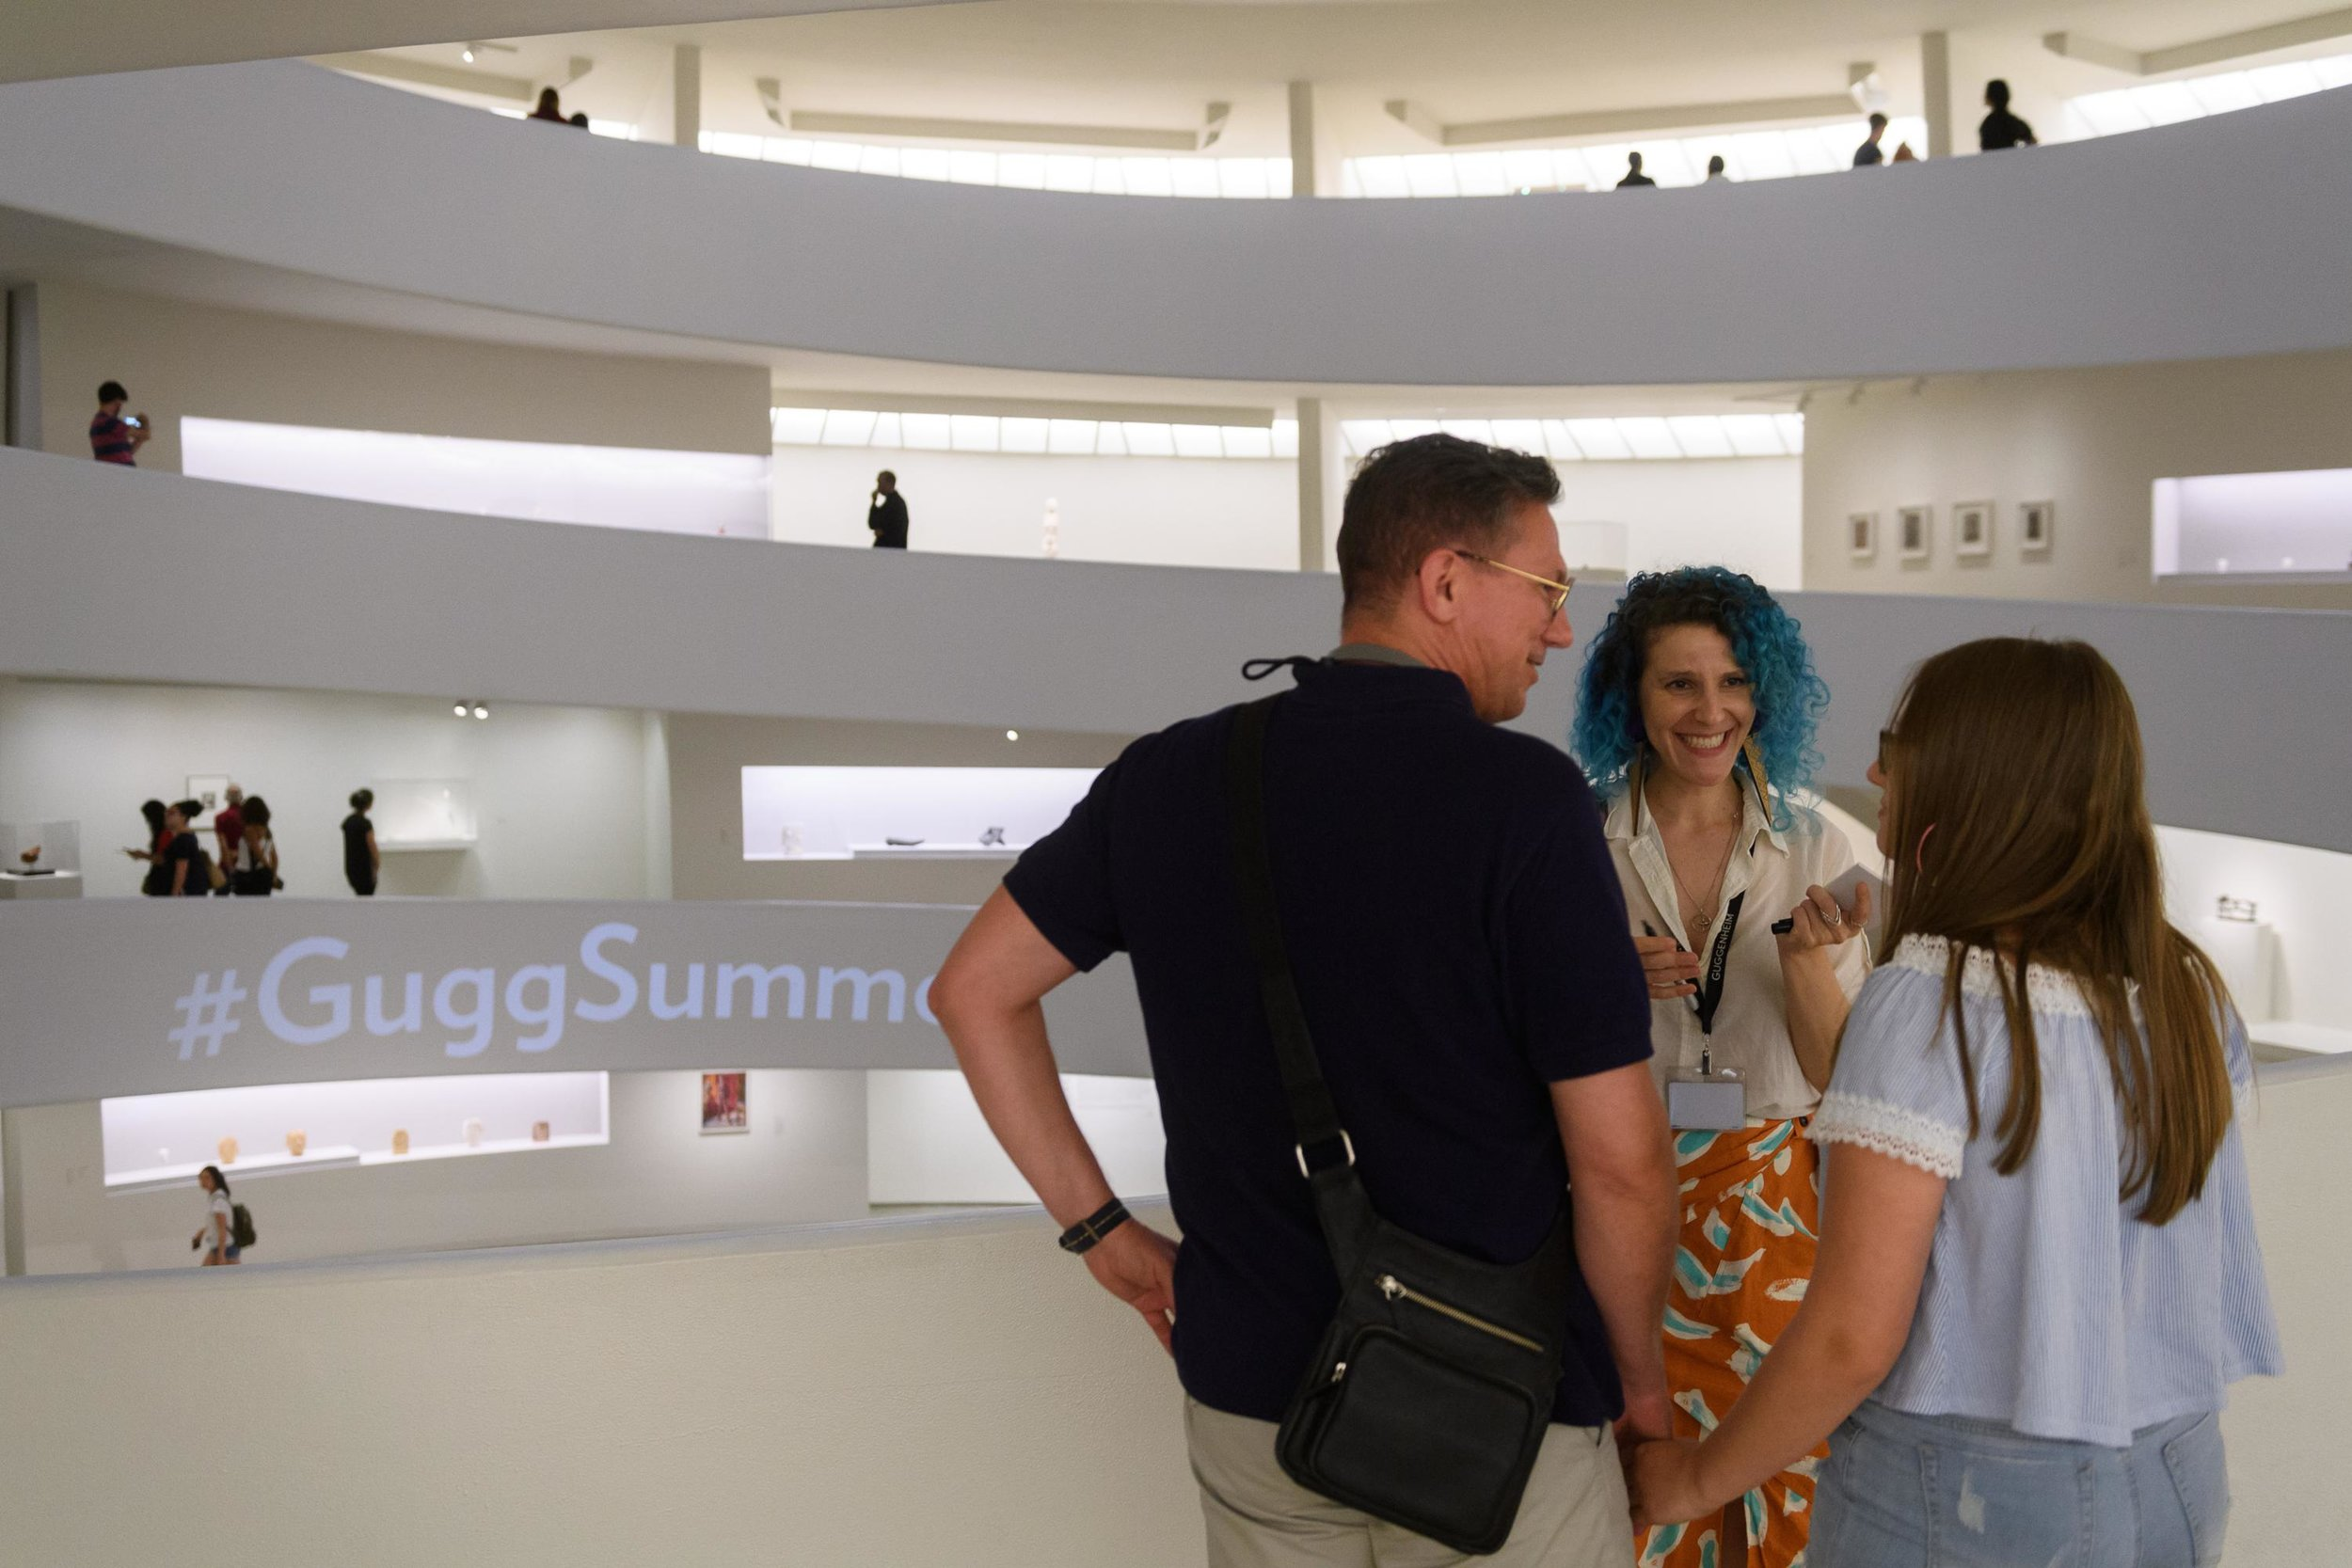 Interacting with visitors during a lighthearted Gallery Encounter.